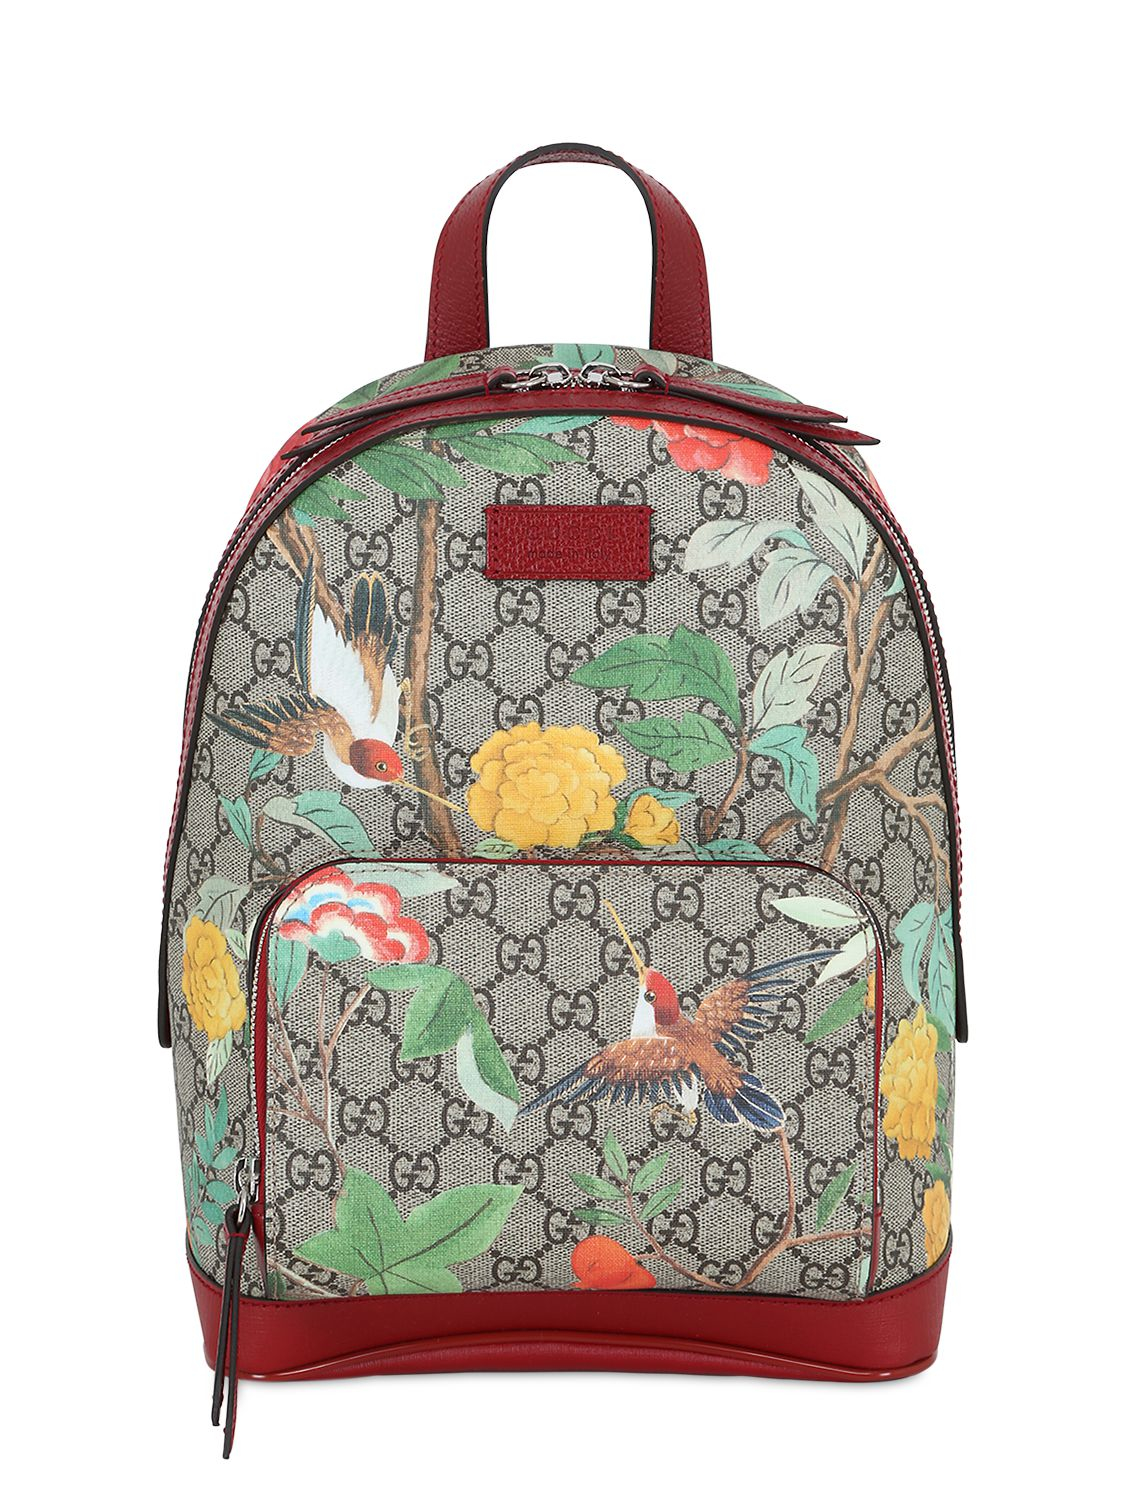 Lyst  Gucci Tian GG Supreme Leather Backpack for Men